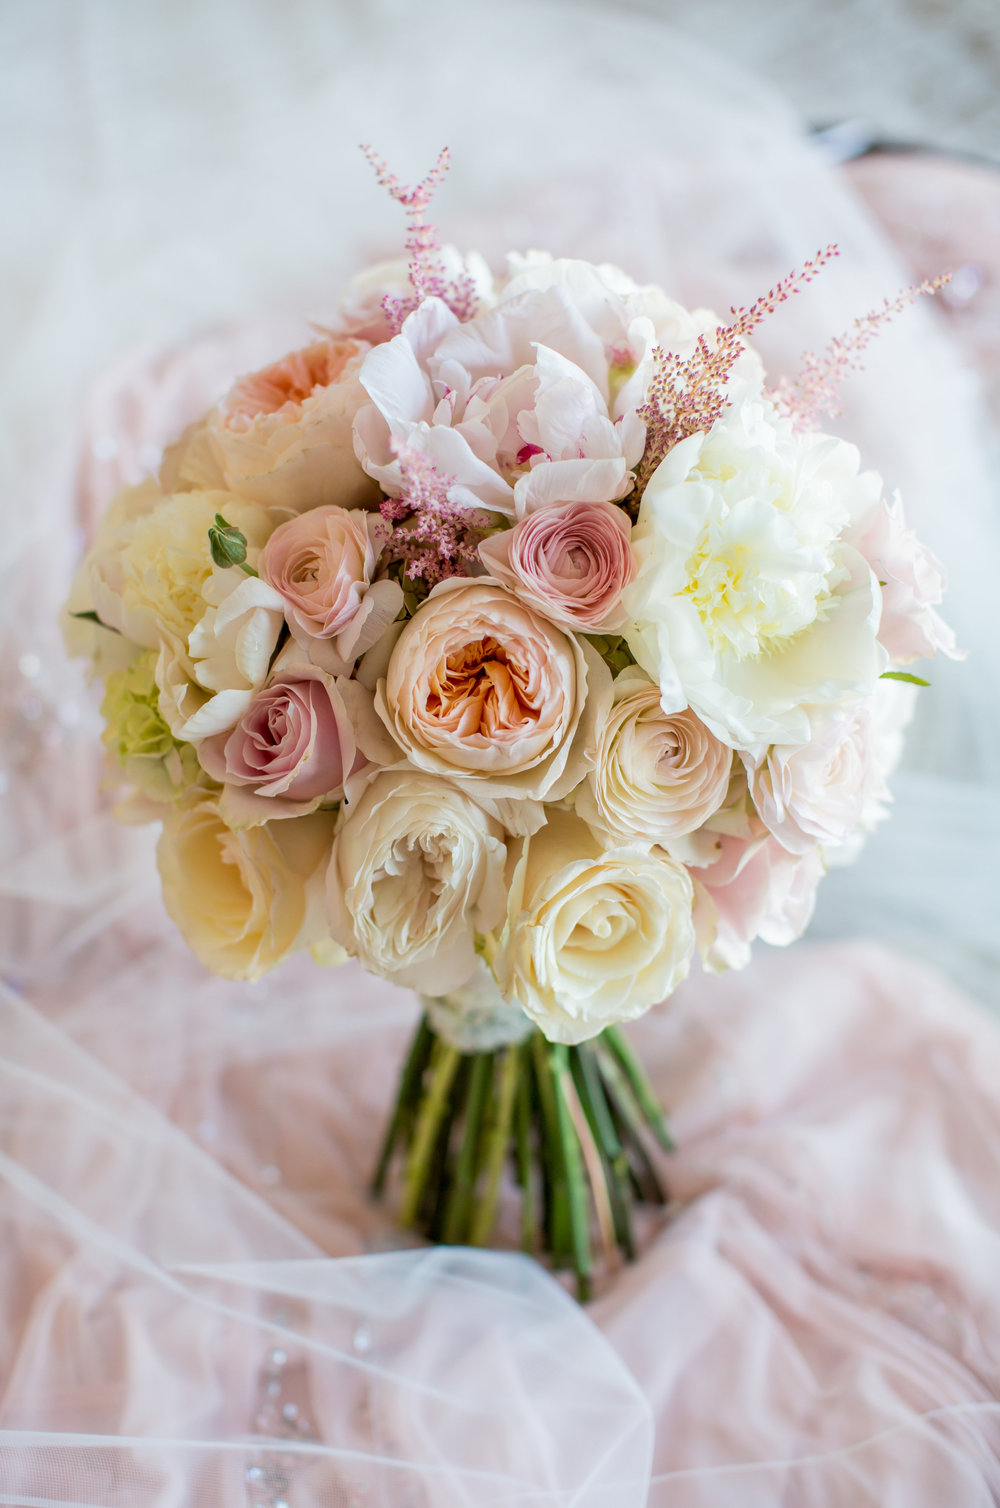 blush and white rose and peony wedding bouquet - - A Diamond Hotel Penthouse Wedding by Katelyn Owens Photography